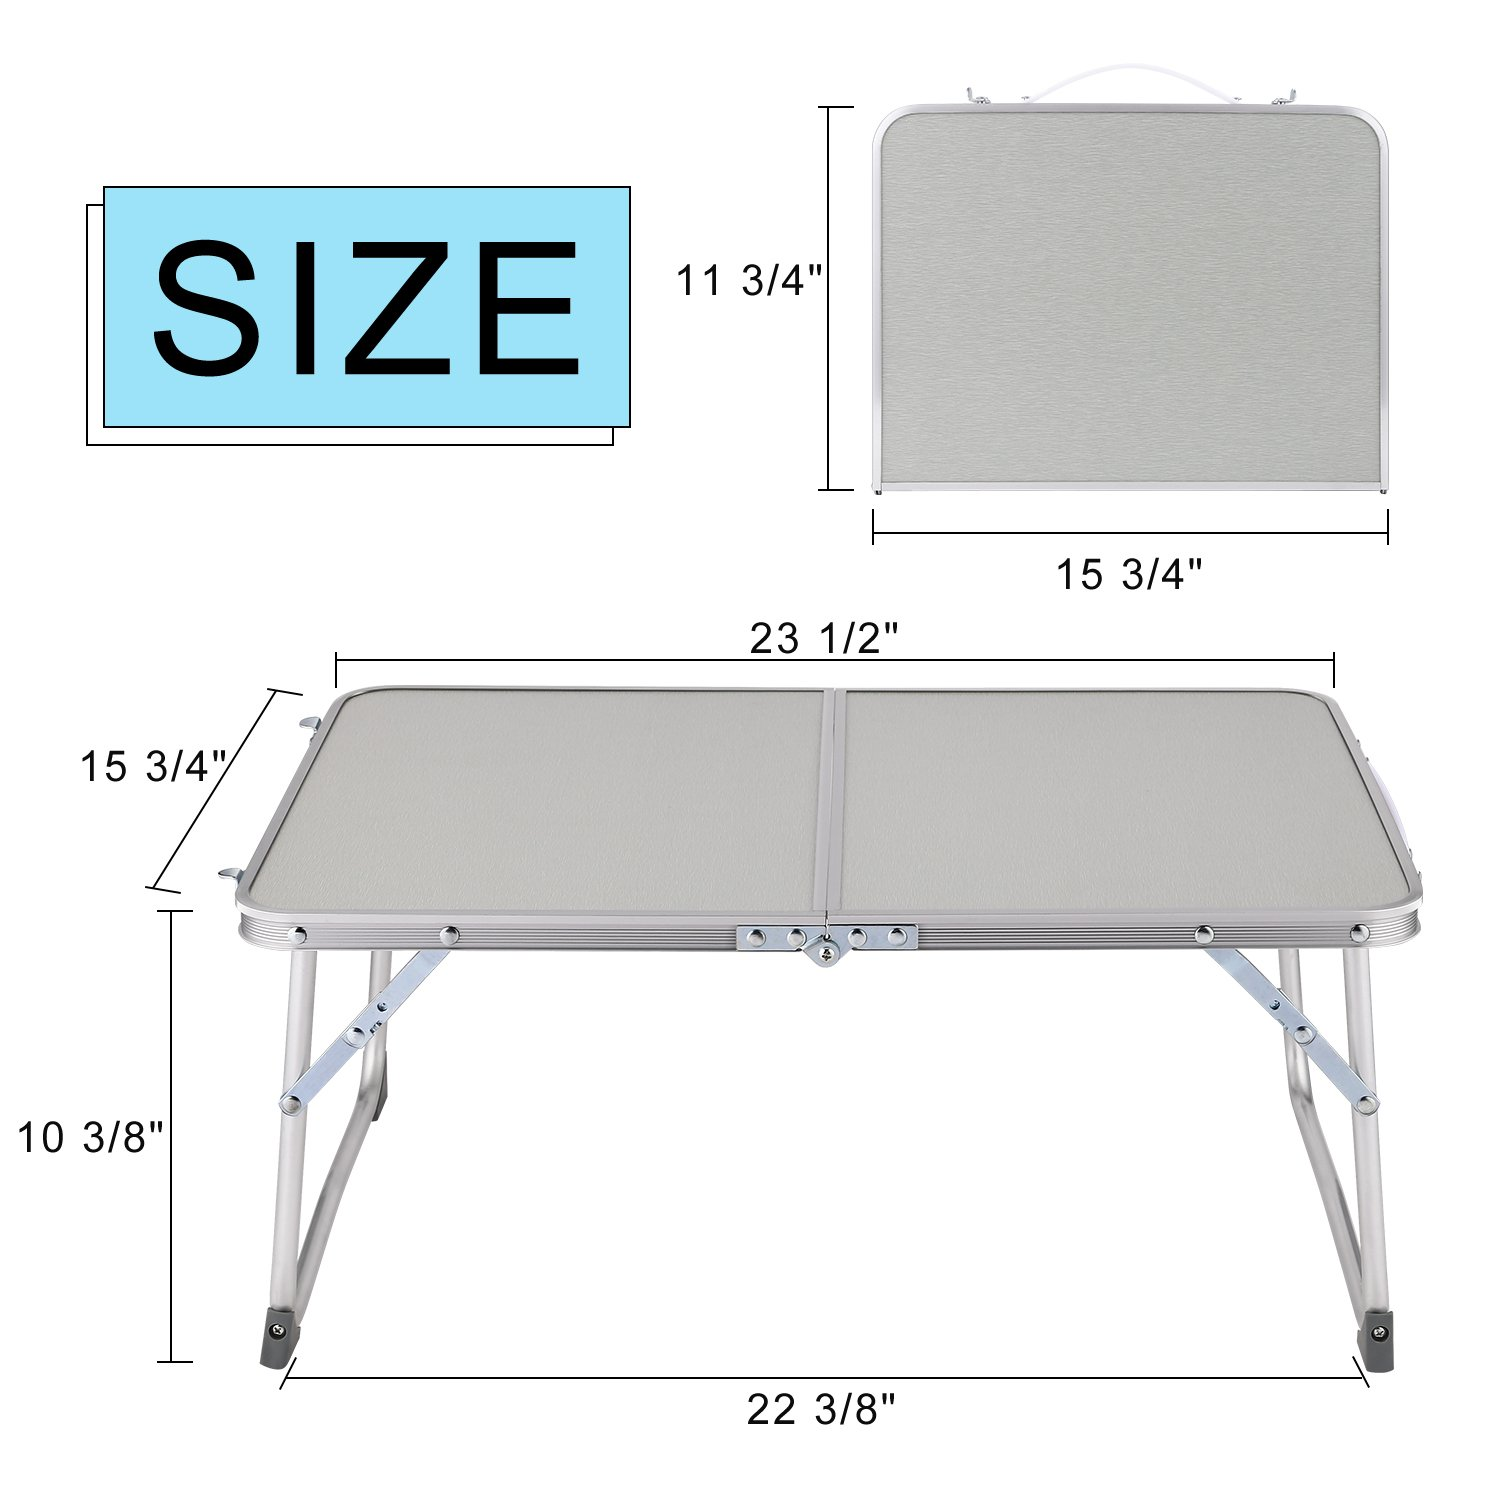 Hindom Aluminum Portable Folding Utility Table with Carrying Handle Portable Patio Table for Garden Party Camping Picnic(US Stock) (Gray) by Hindom (Image #6)